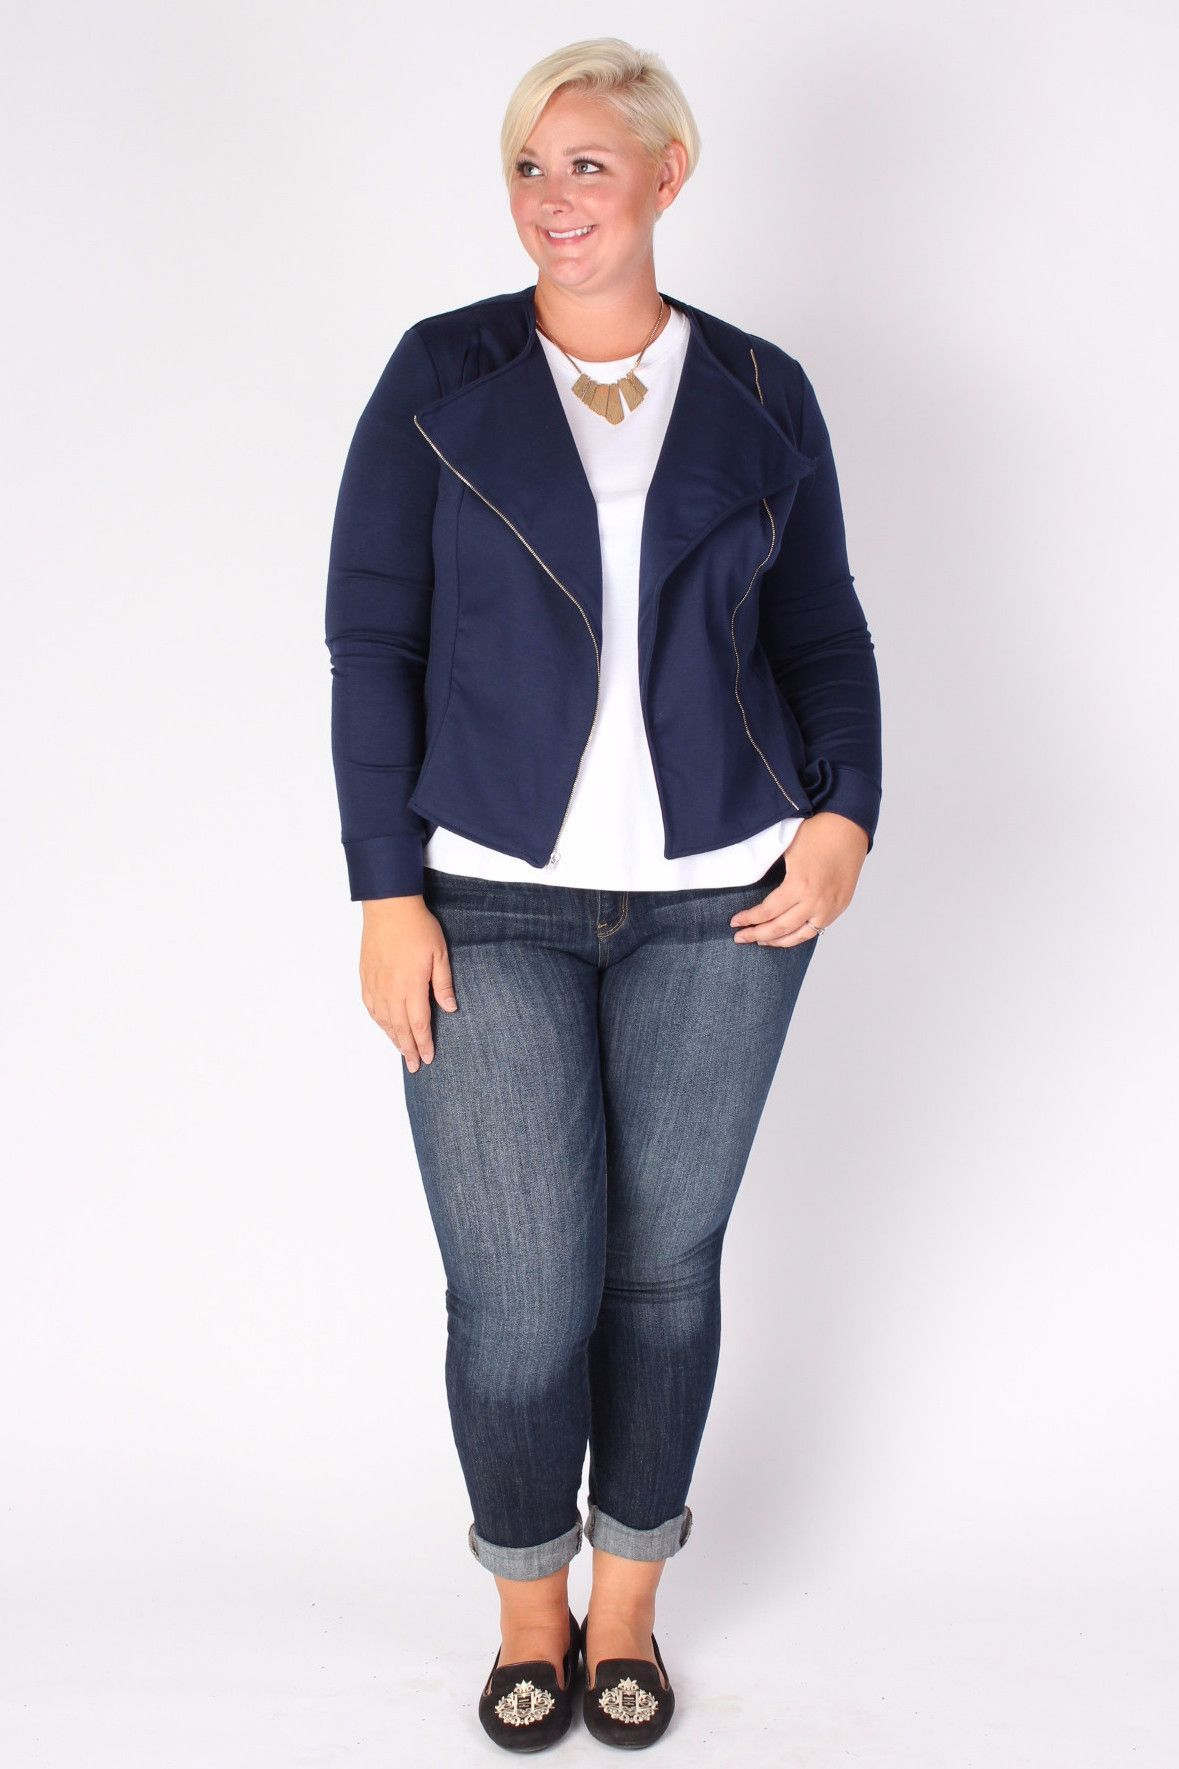 plus size clothing for women  posh zippered blazer  navy